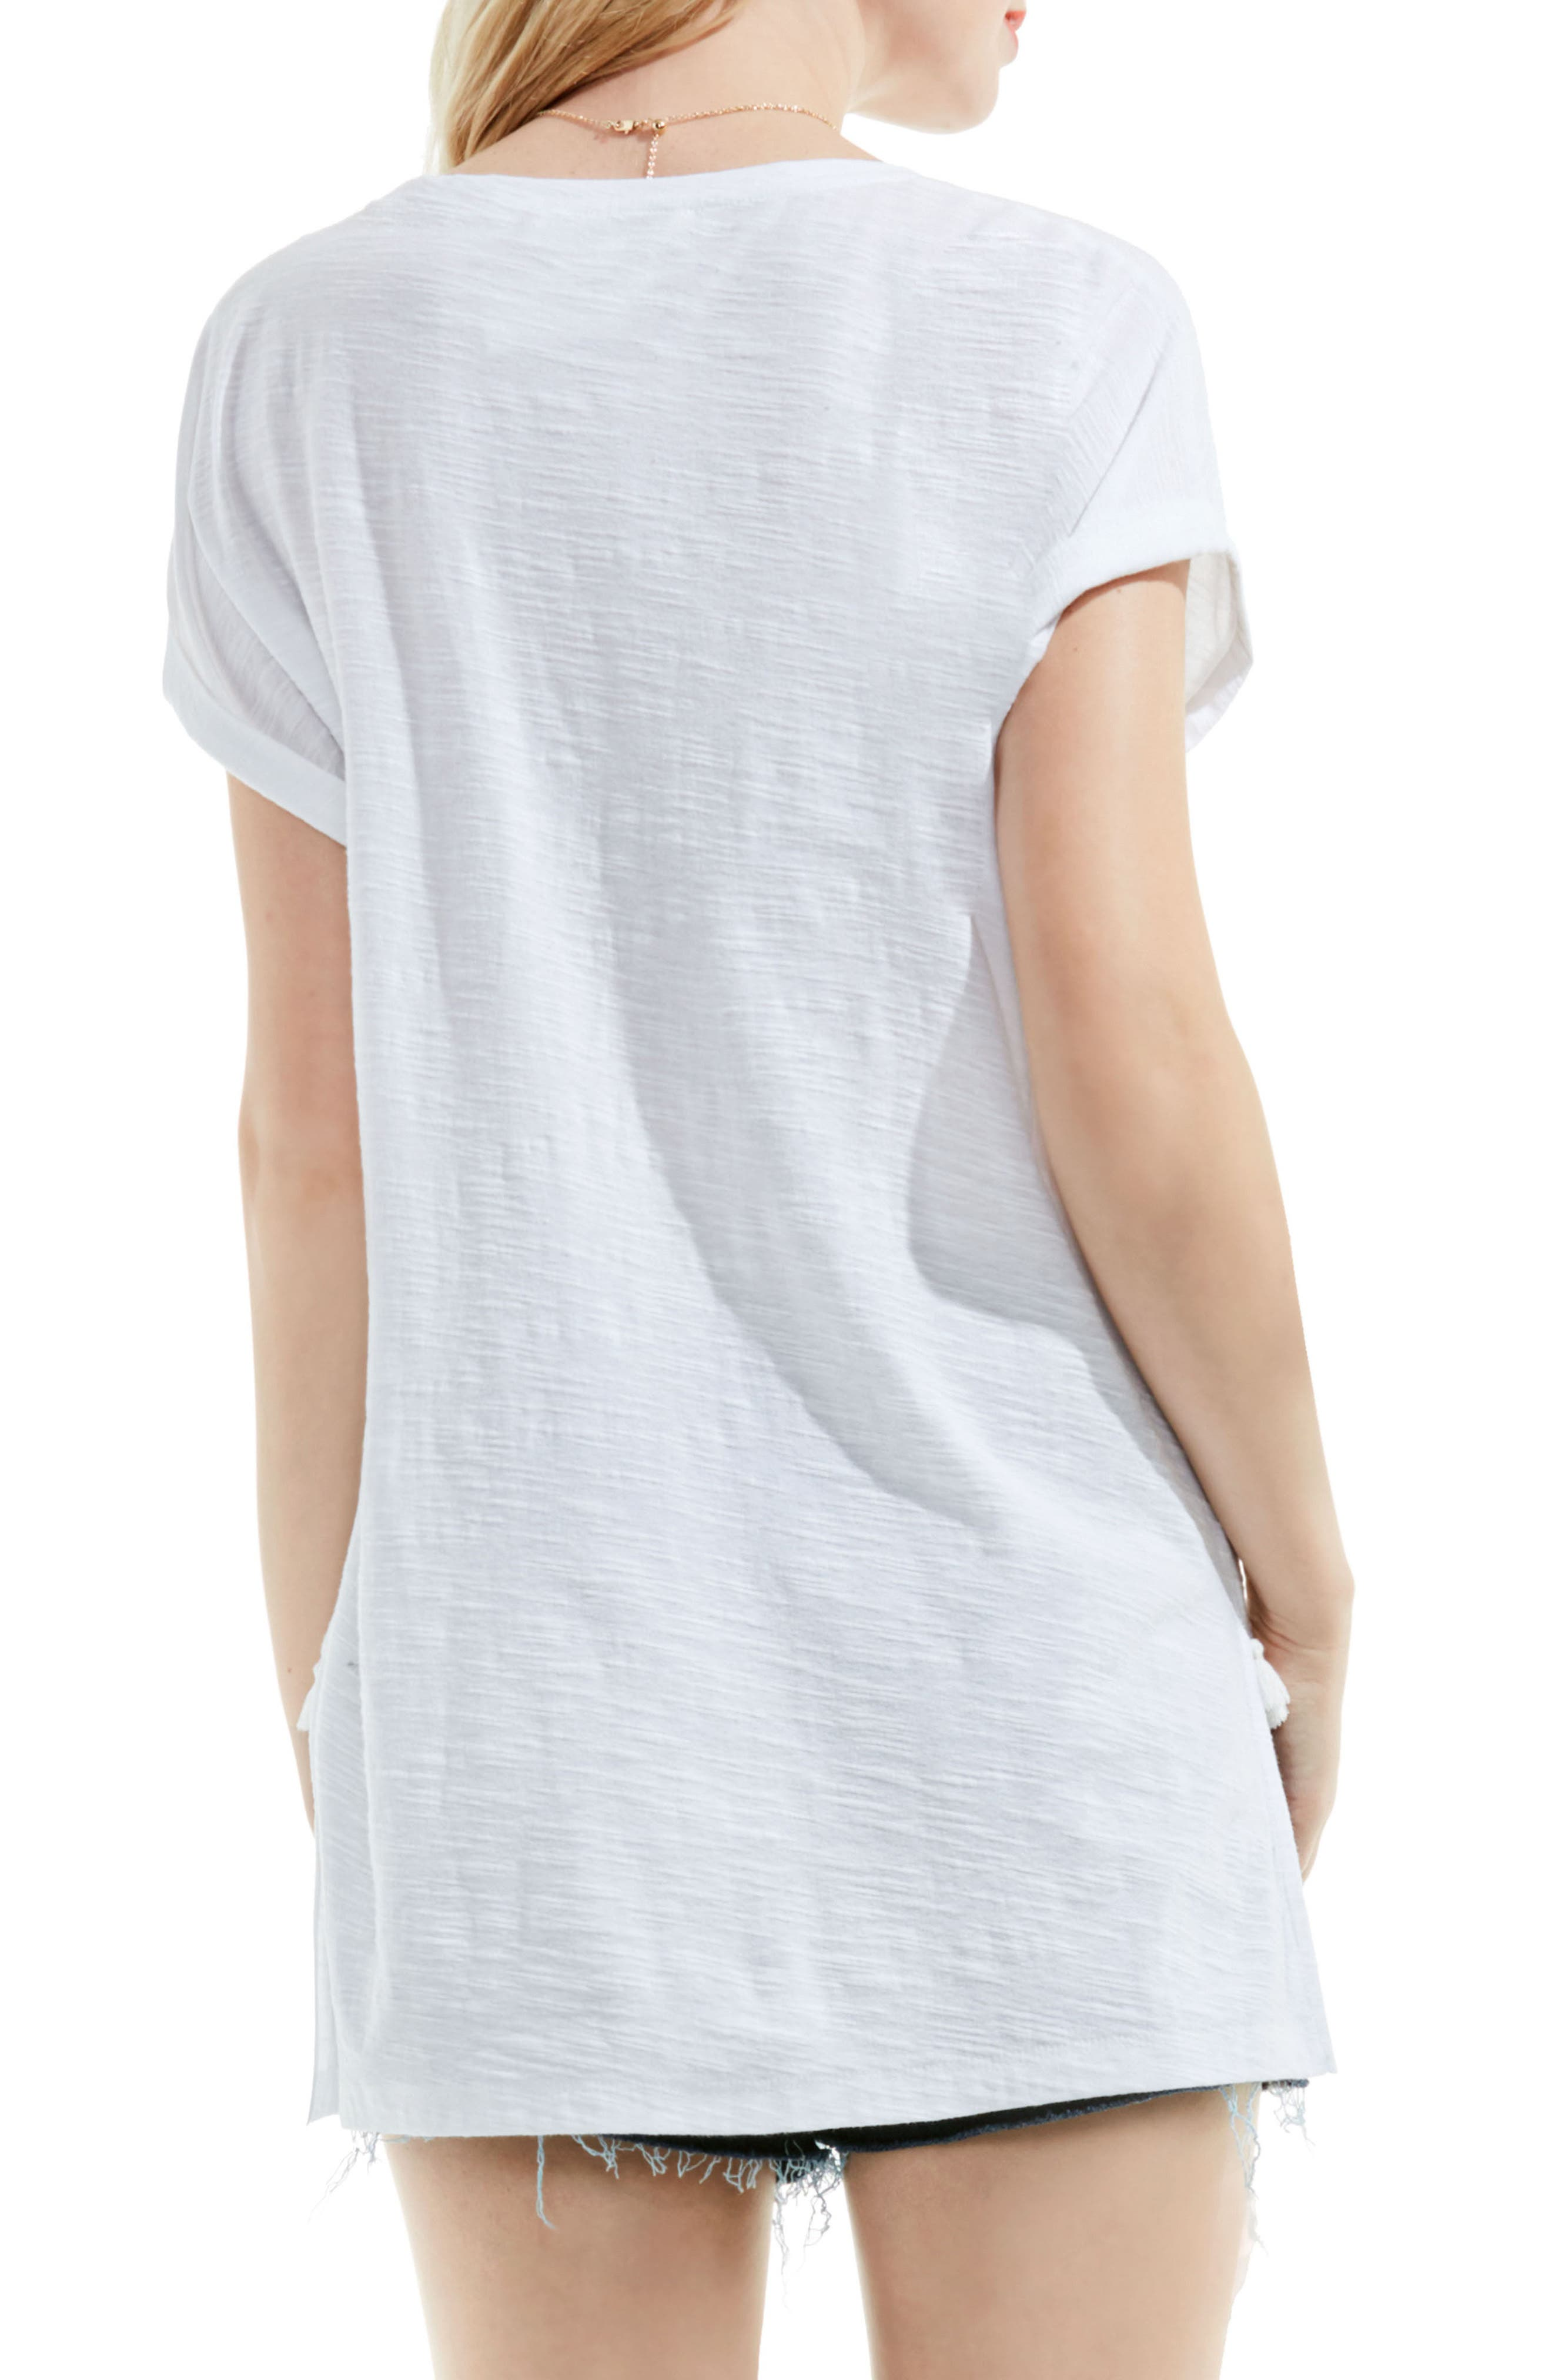 Alternate Image 2  - Two by Vince Camuto Tassel Trim Cotton Tee